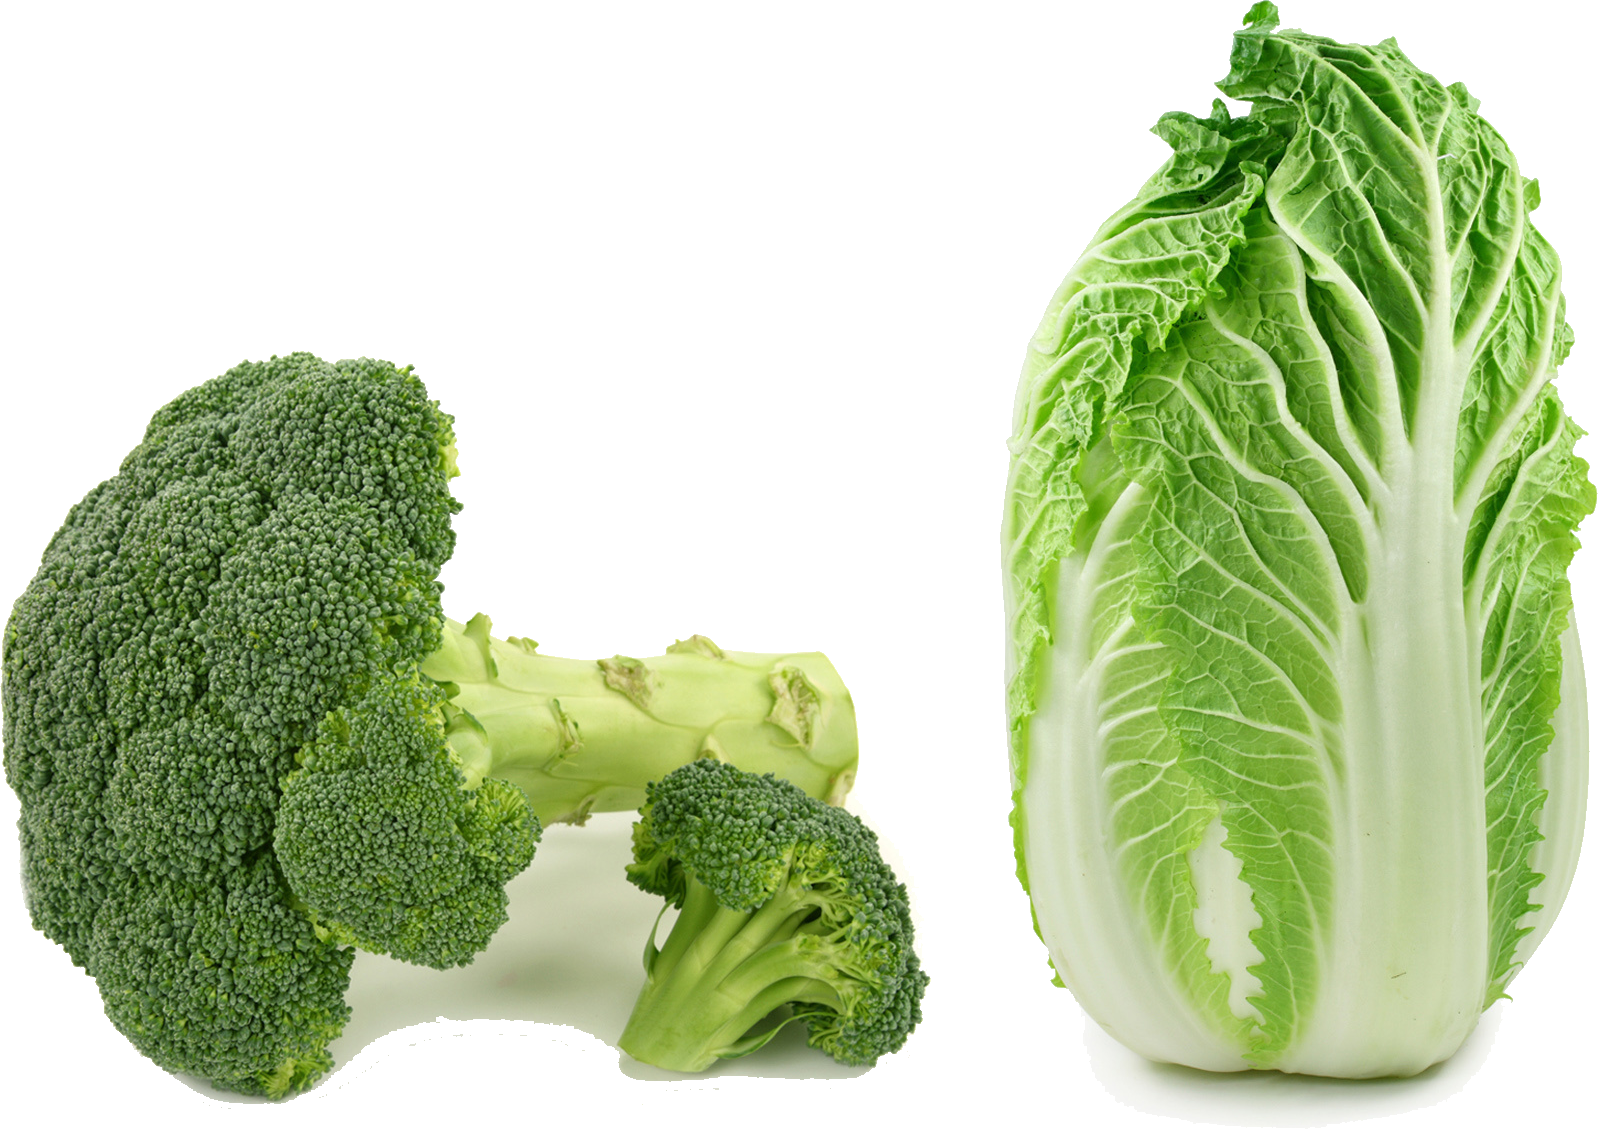 Napa cabbage png. Asian cuisine choy sum